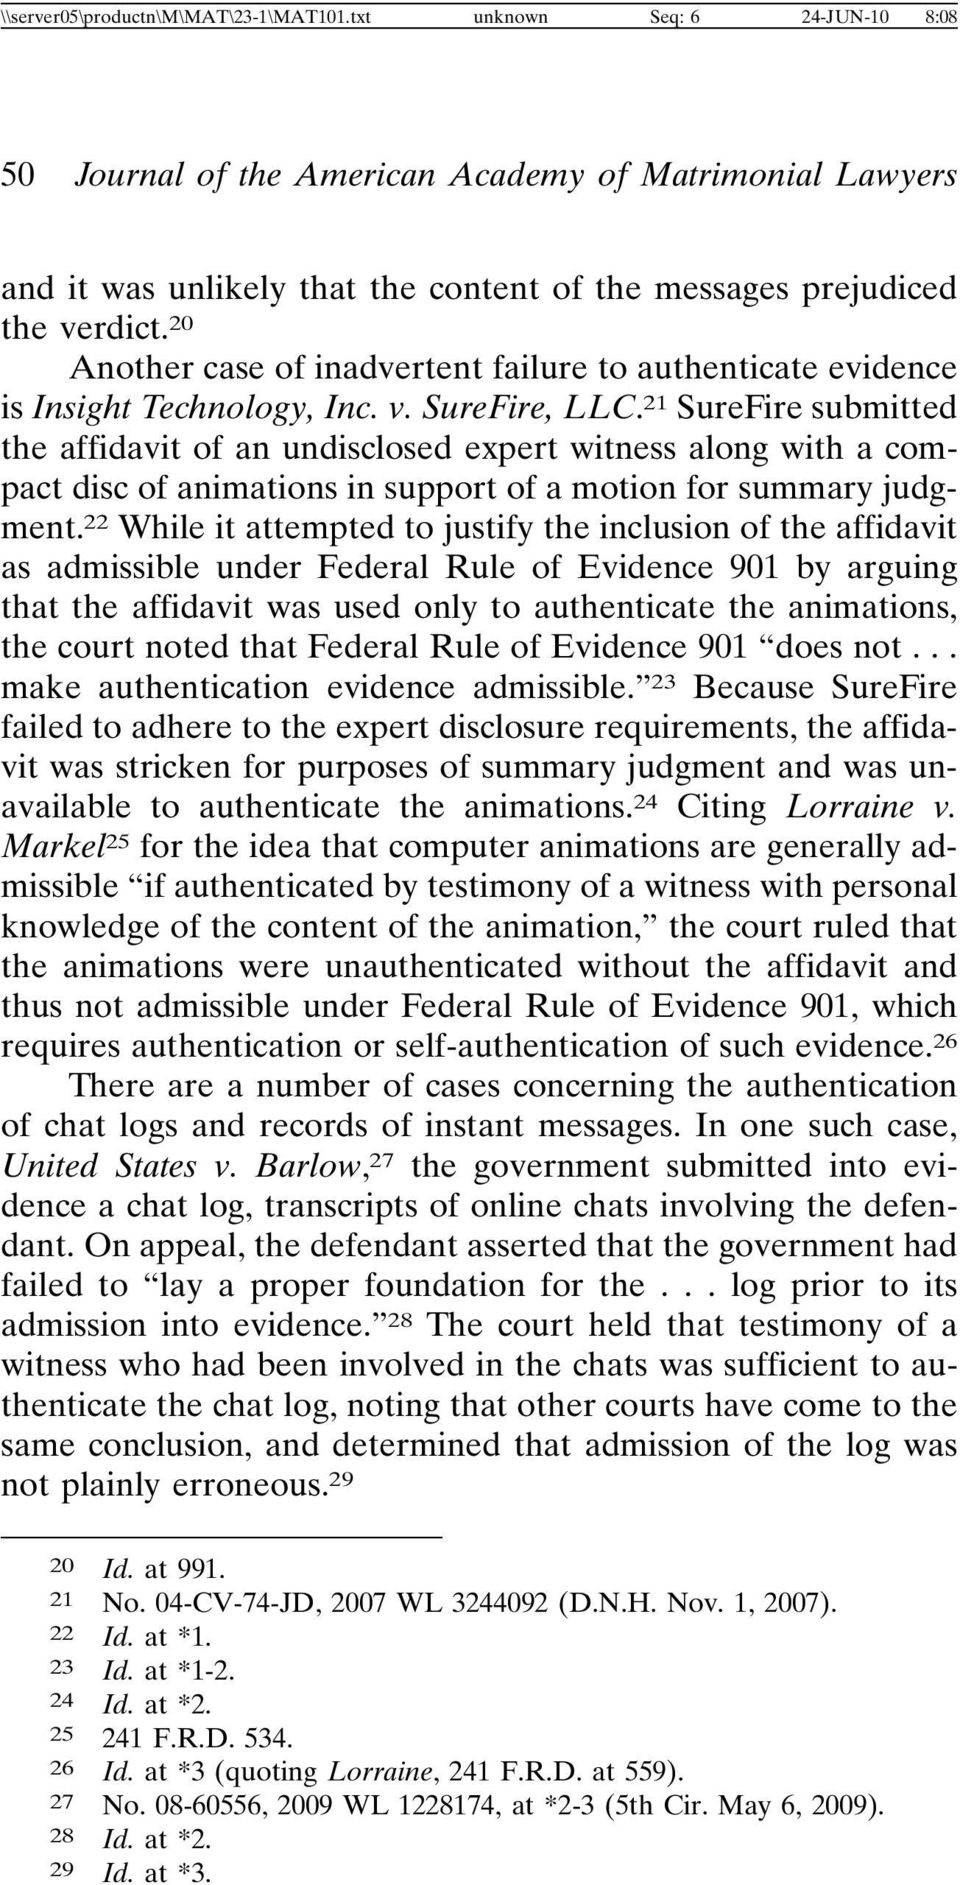 20 Another case of inadvertent failure to authenticate evidence is Insight Technology, Inc. v. SureFire, LLC.